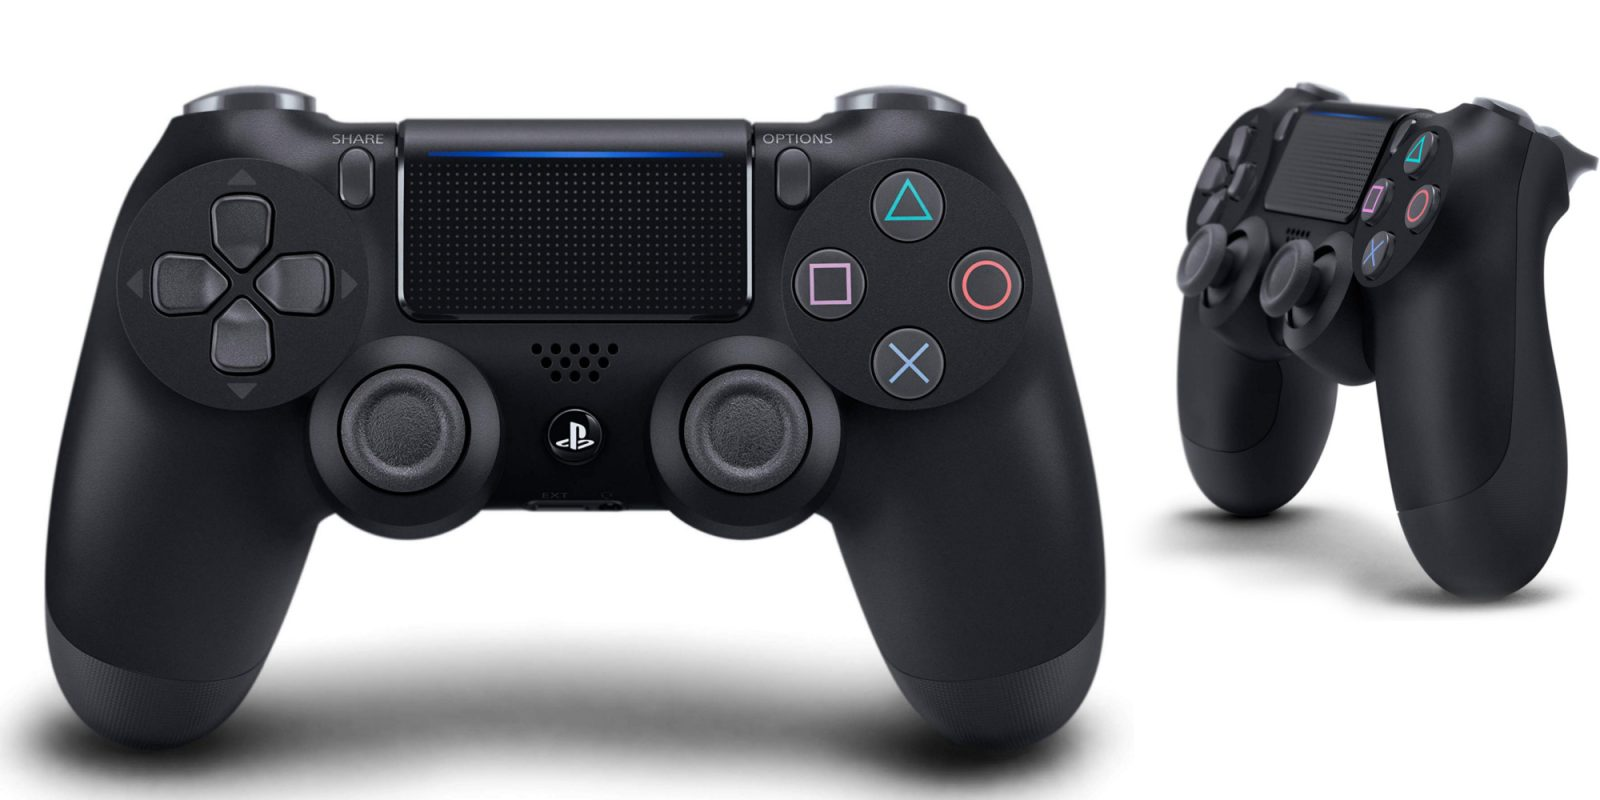 Grab a Sony DualShock 4 Wireless Controller for $35 shipped today (Reg. $45+)